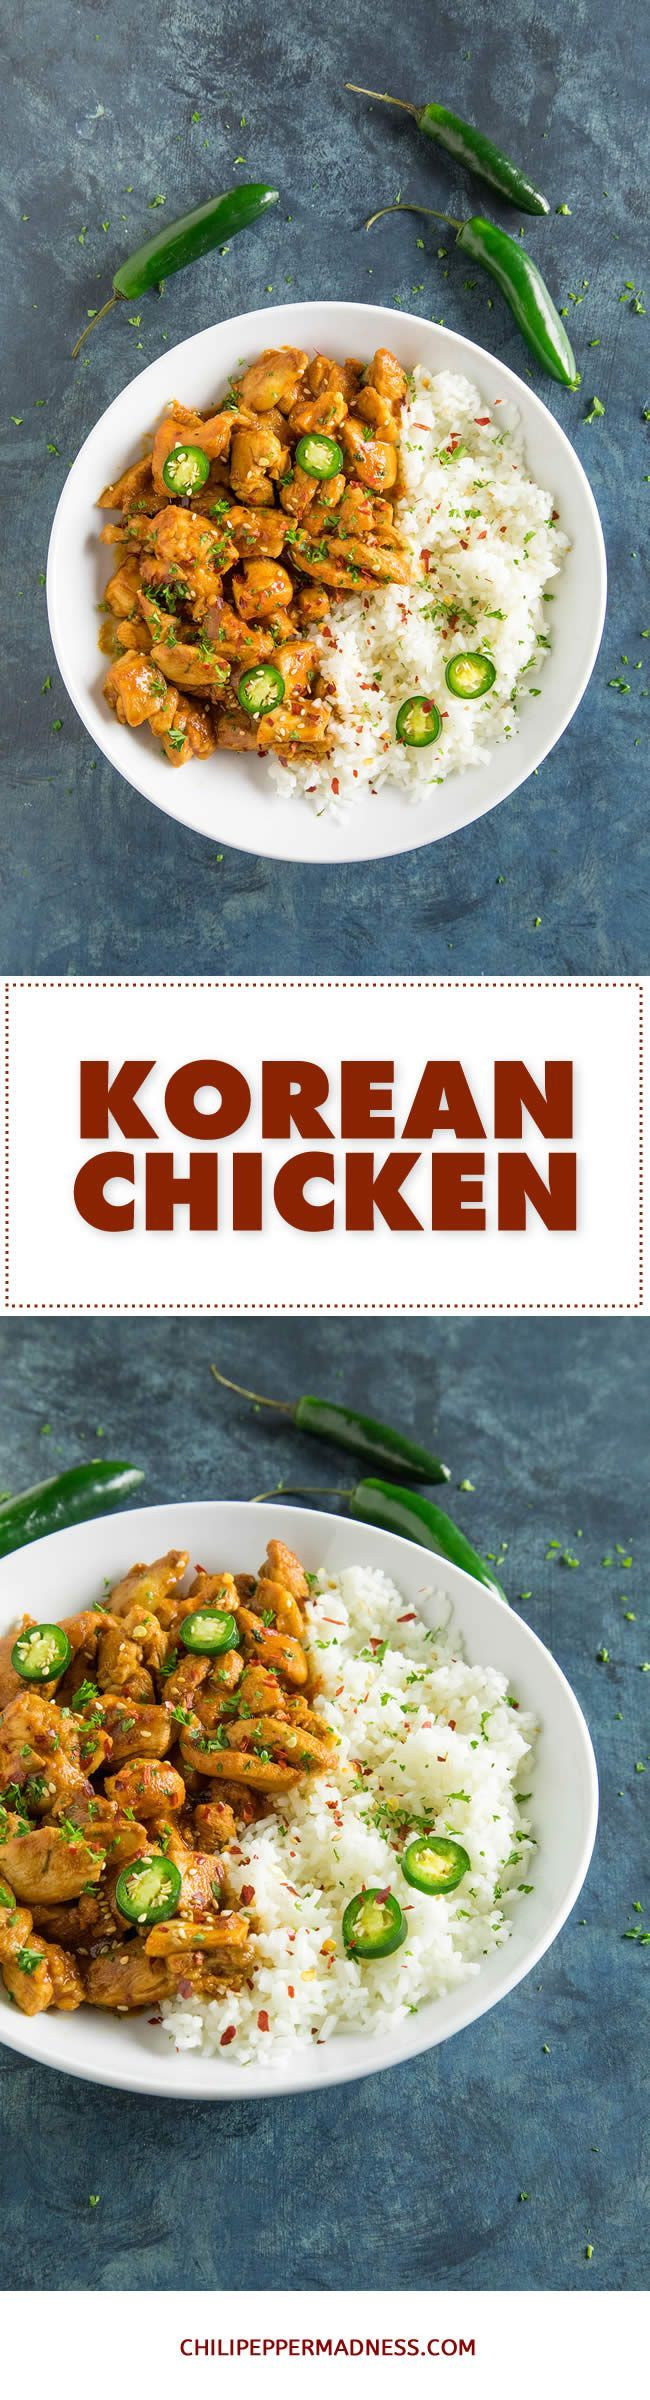 Korean Chicken - A quick and easy recipe for spicy Korean chicken made with gochujang, sriracha, soy sauce, spicy chili flakes and more. On the table fast! Perfect served over rice.  #chicken #koreanchicken #gochujang #recipe #recipeoftheday #recipeideas #recipesharing #chilipeppermadness #spicyfood #spicylife #delish #tasty #foodblogeats #dinner #spicy #recipes